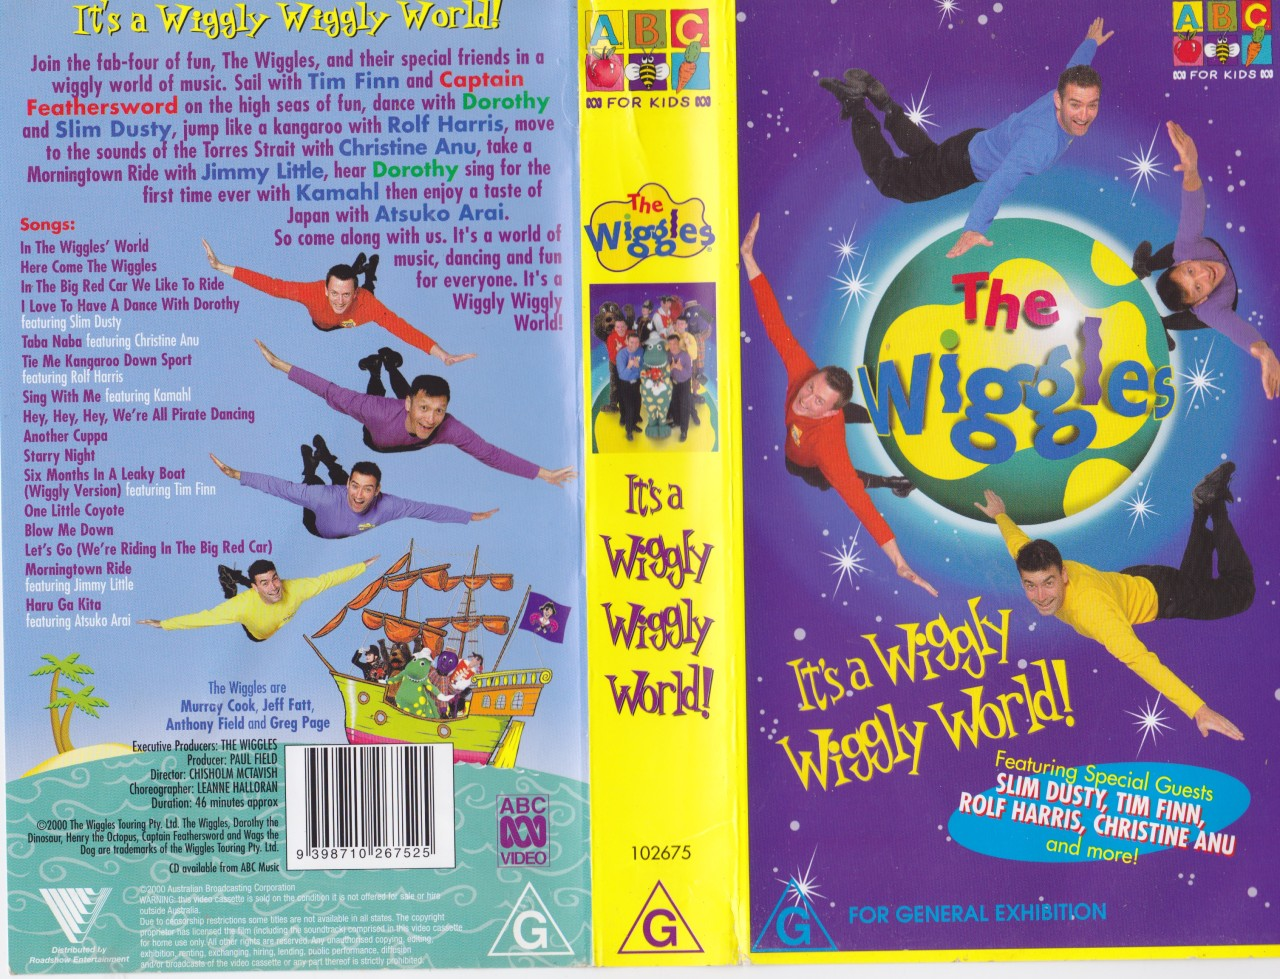 Details about THE WIGGLES ITS A WIGGLY WIGGLY WORLD VHS VIDEO PAL  A    The Wiggles Wiggly Wiggly World Vhs